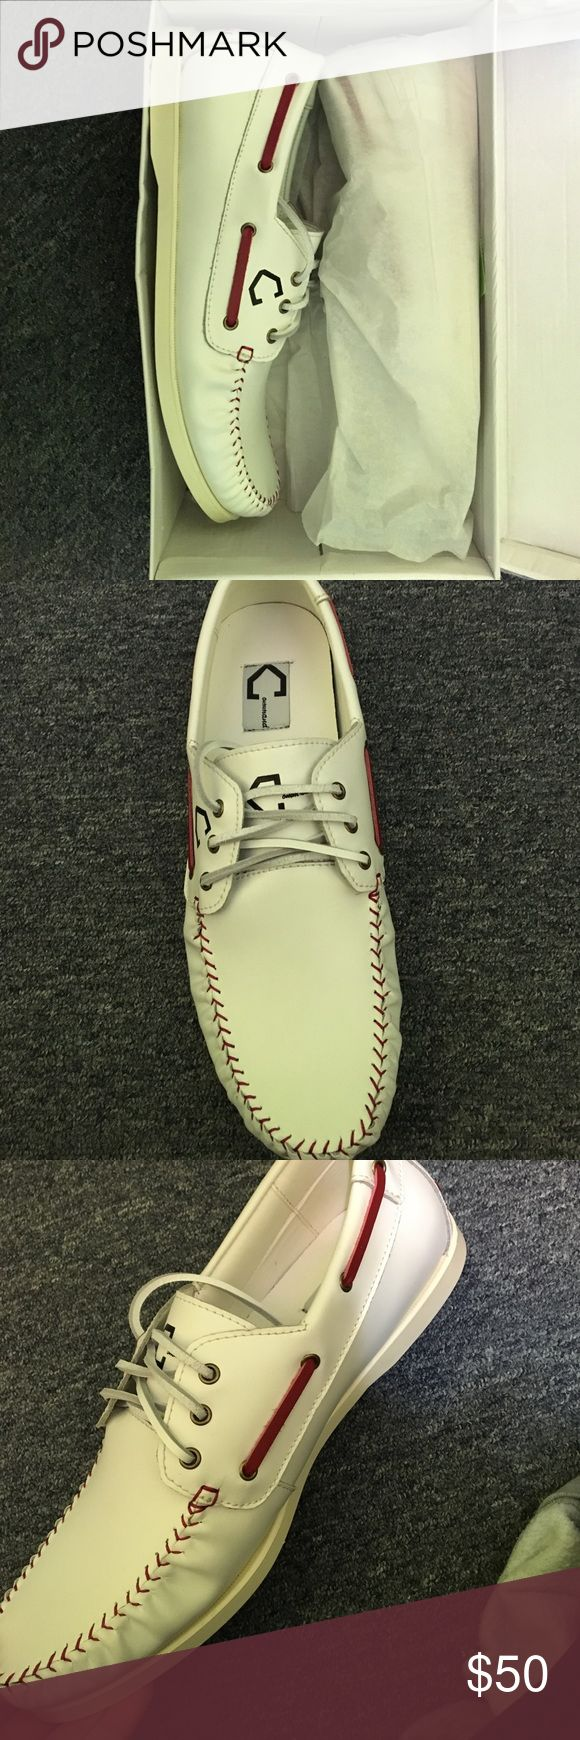 Size 12 Men's Command Athletics Boat Shoes Men's Boat Shoes Size 12. Ordered from website and they sent the wrong size. Brand new, never worn. Fit and look like Sperry Boat Shoes. Command Athletics Shoes Boat Shoes